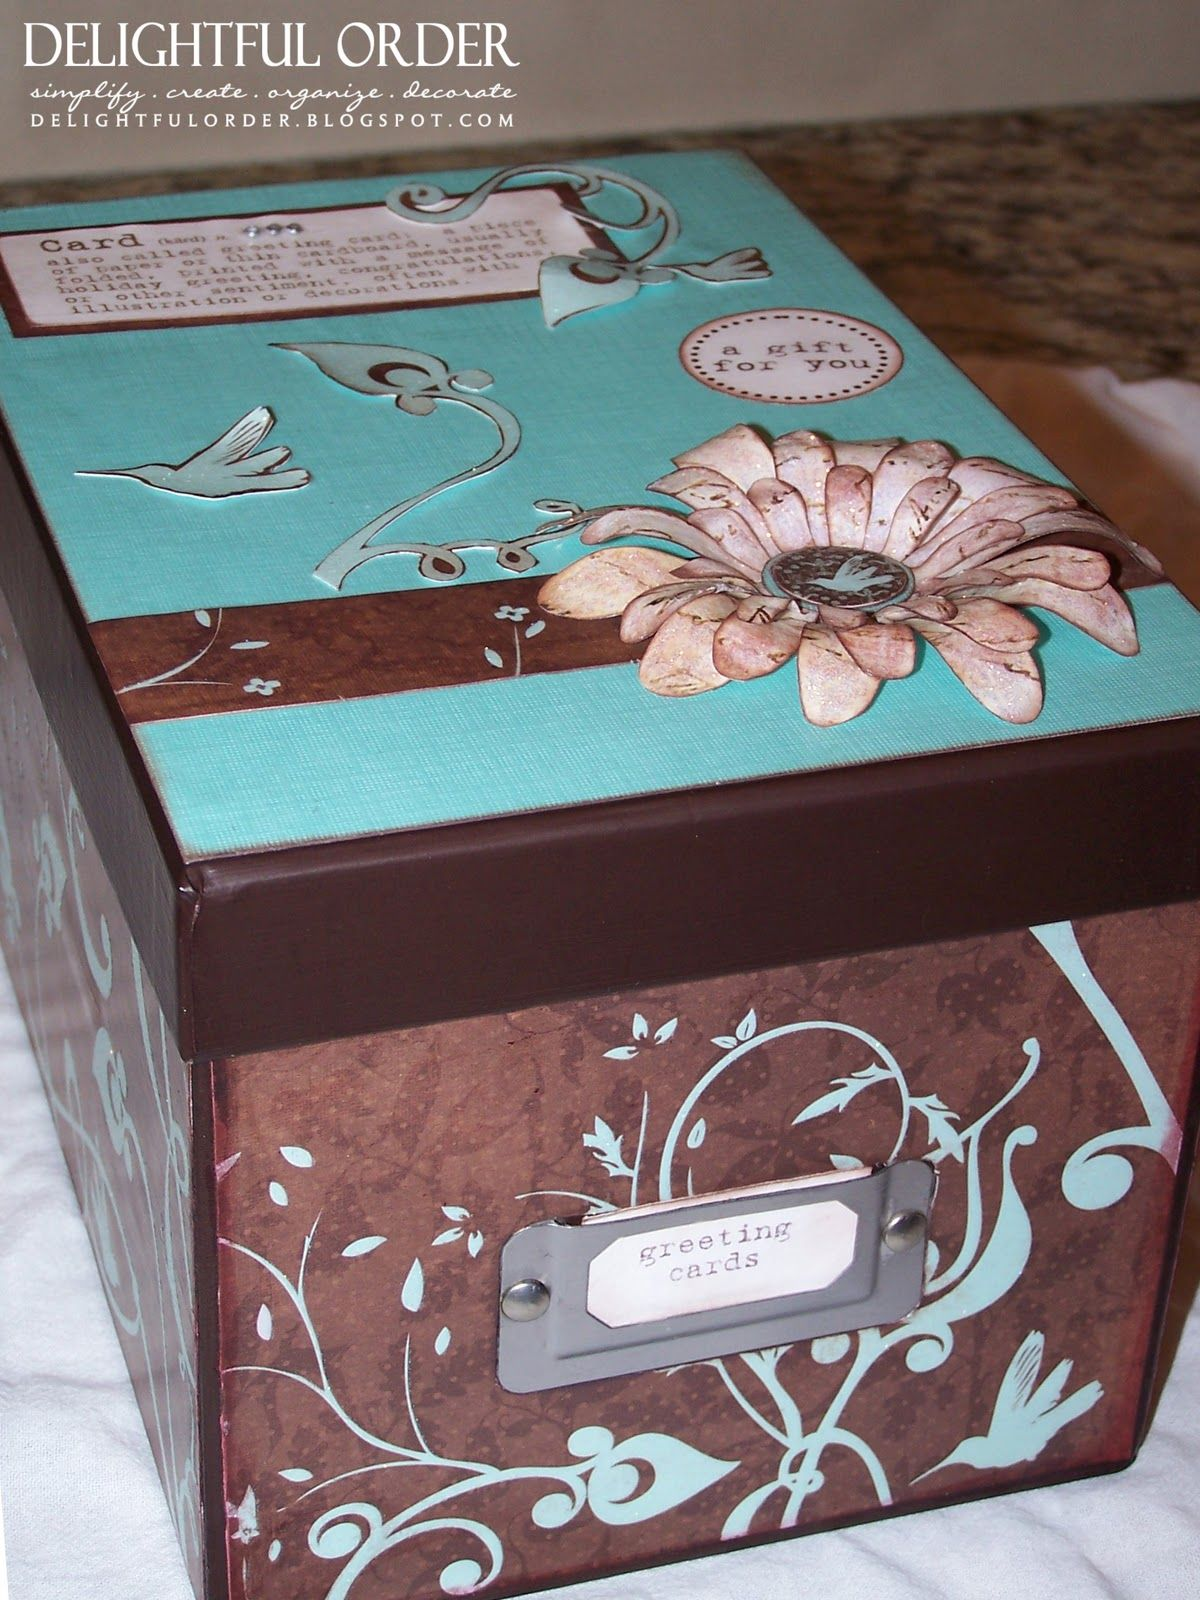 Delightful Order Greeting Card Box Gift Idea Assortment Of Cards